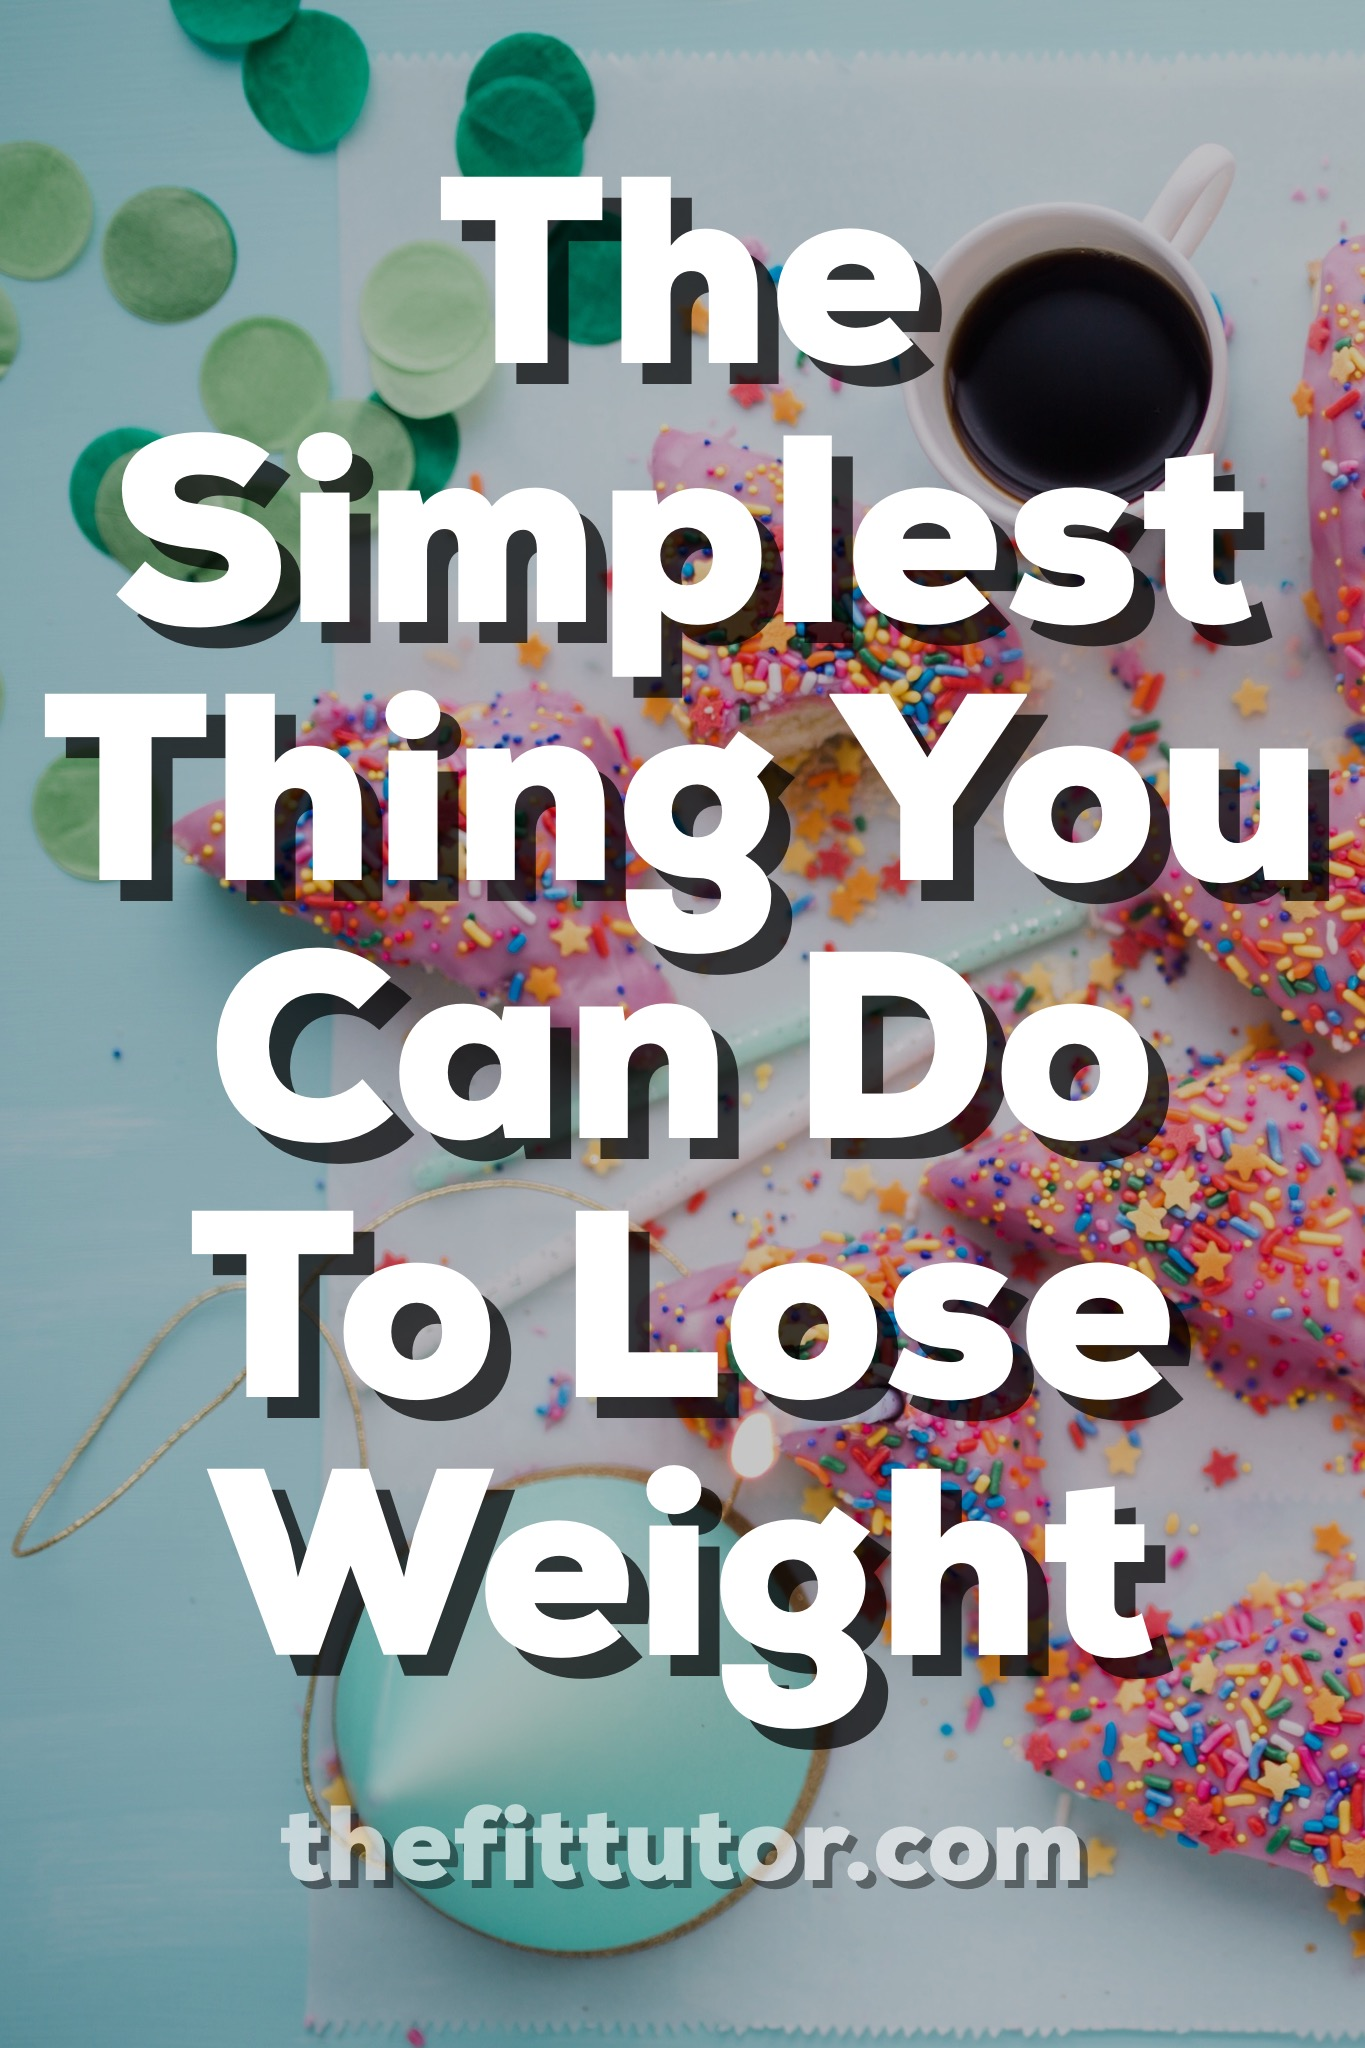 This 2 minute life hack will help you survive a party without overeating, and without regret! Try it today! The simplest thing you can do to lose weight // Find your why